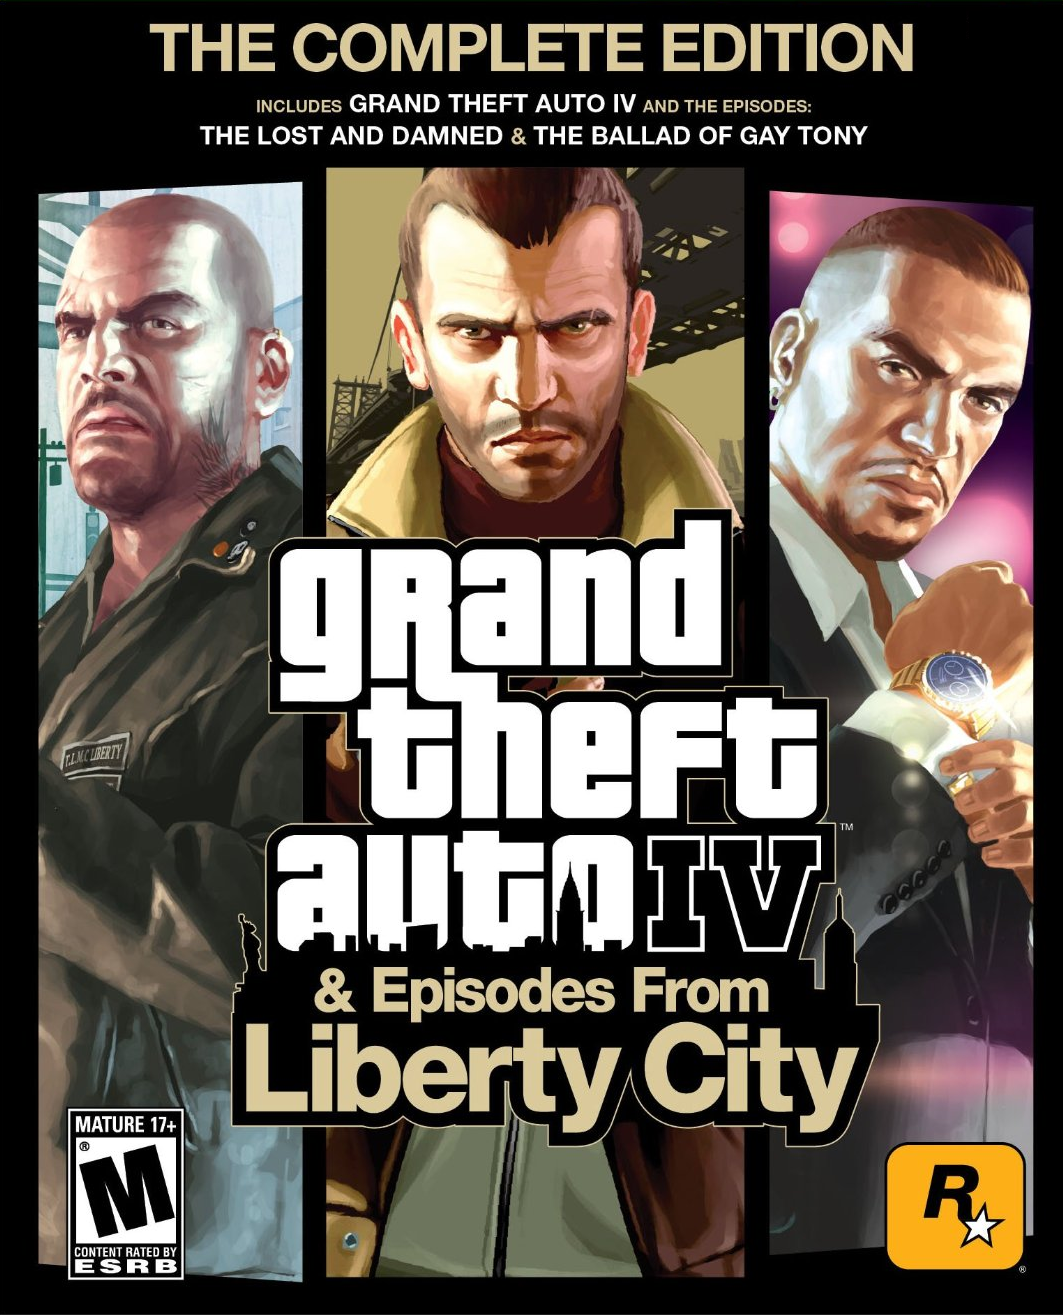 Grand theft auto iv episodes from liberty city the complete edition